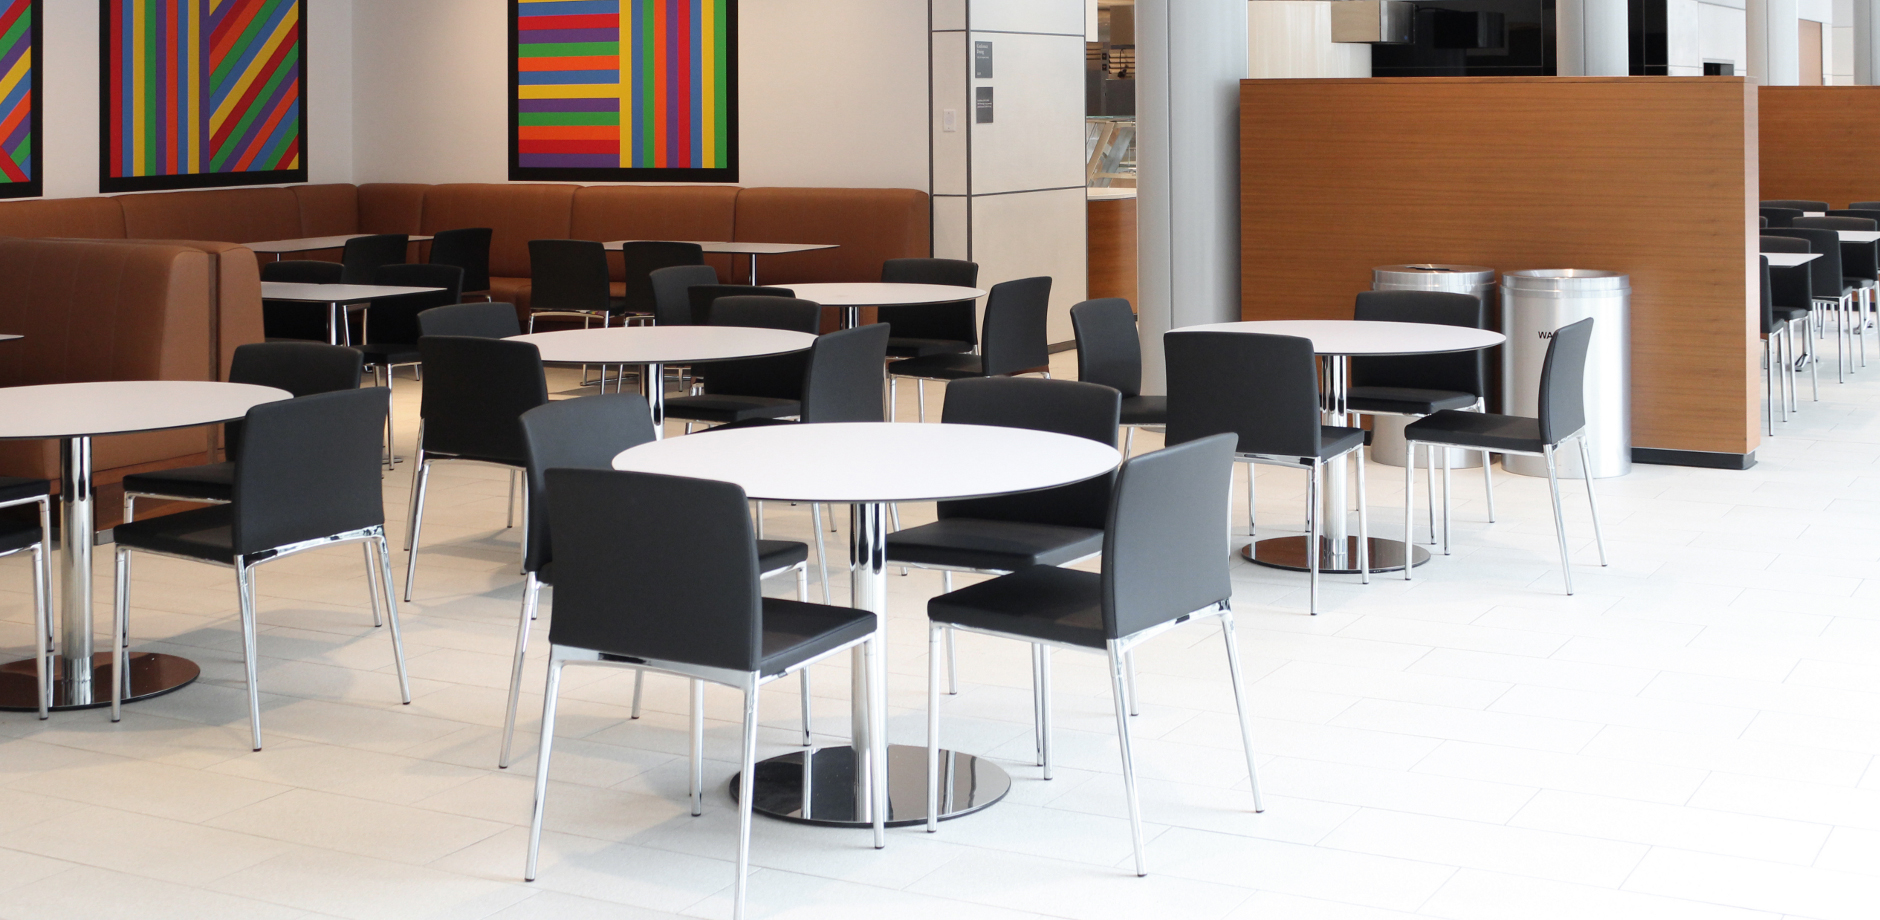 Yale SoM, US, Ceno four-legged chair and Aline table by Wilkhahn